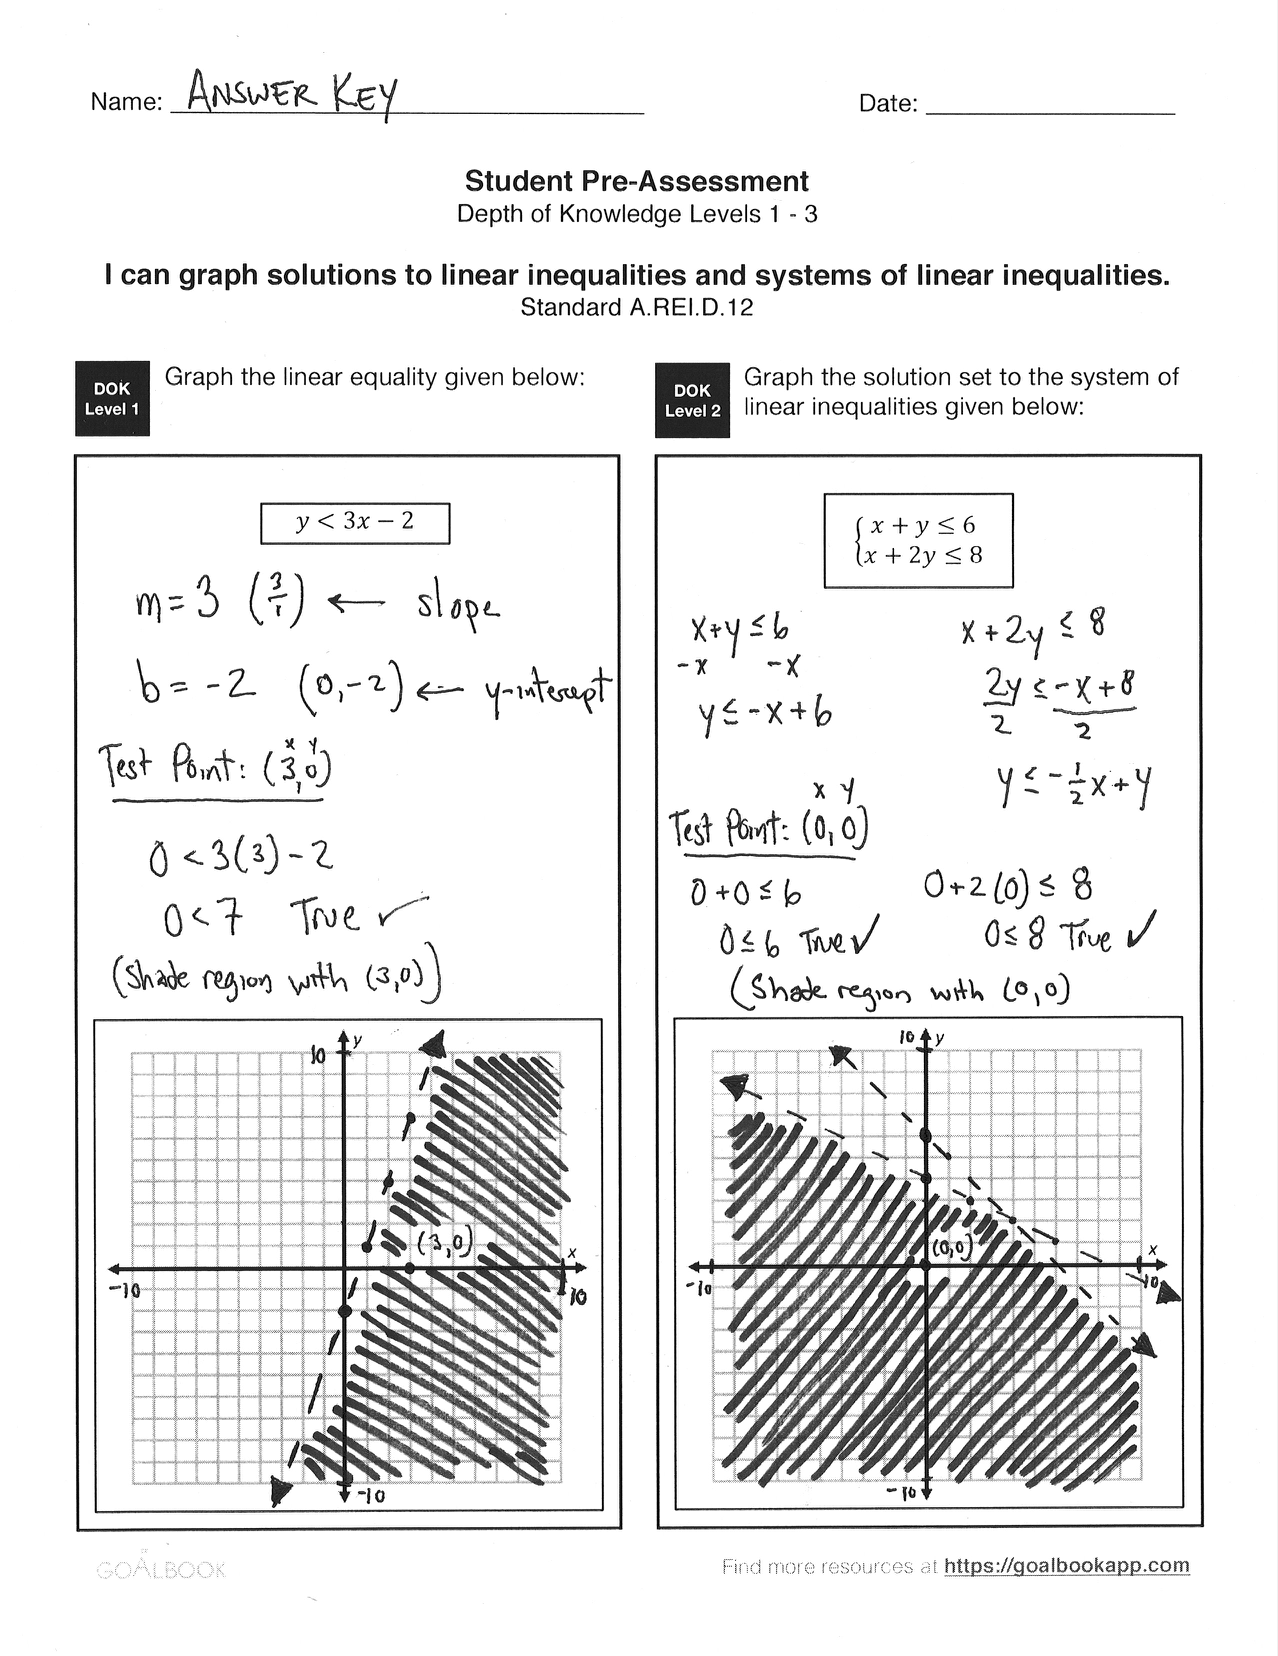 worksheet System Of Linear Inequalities Worksheet hsa rei 12 graph two variable linear inequalities math high full resource contains